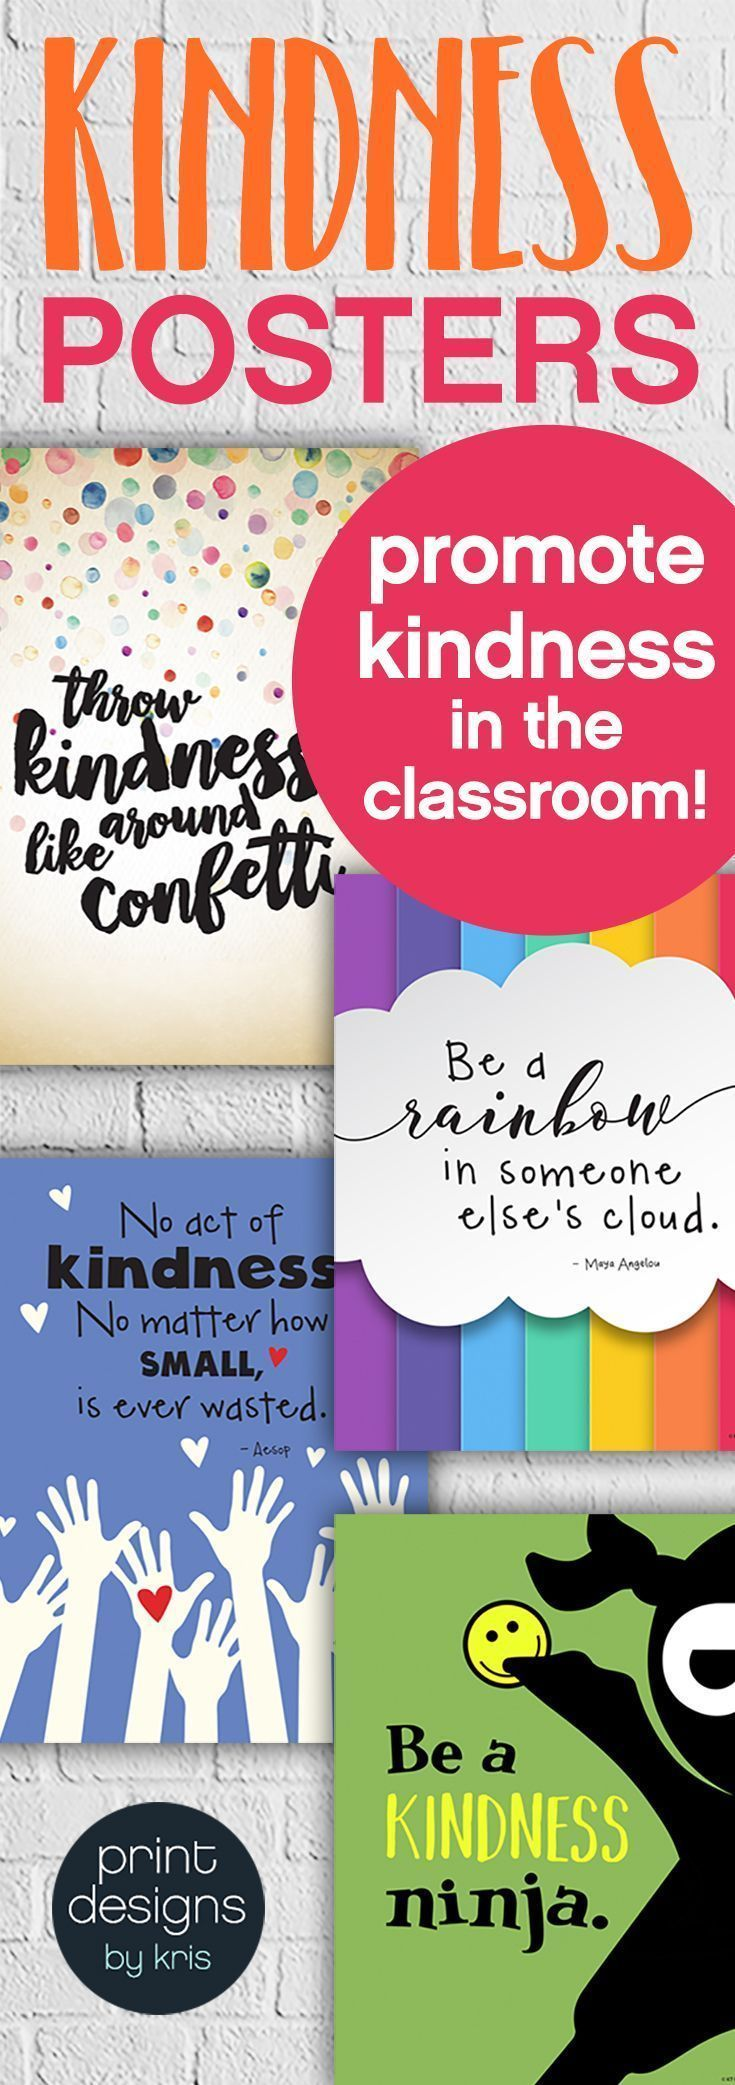 Promote kindness in the school classroom with these fun and unique kindness posters. Hang them in your classroom or the school hallway to remind students every day about the importance of kindness and how you treat others. Click the link to check them out